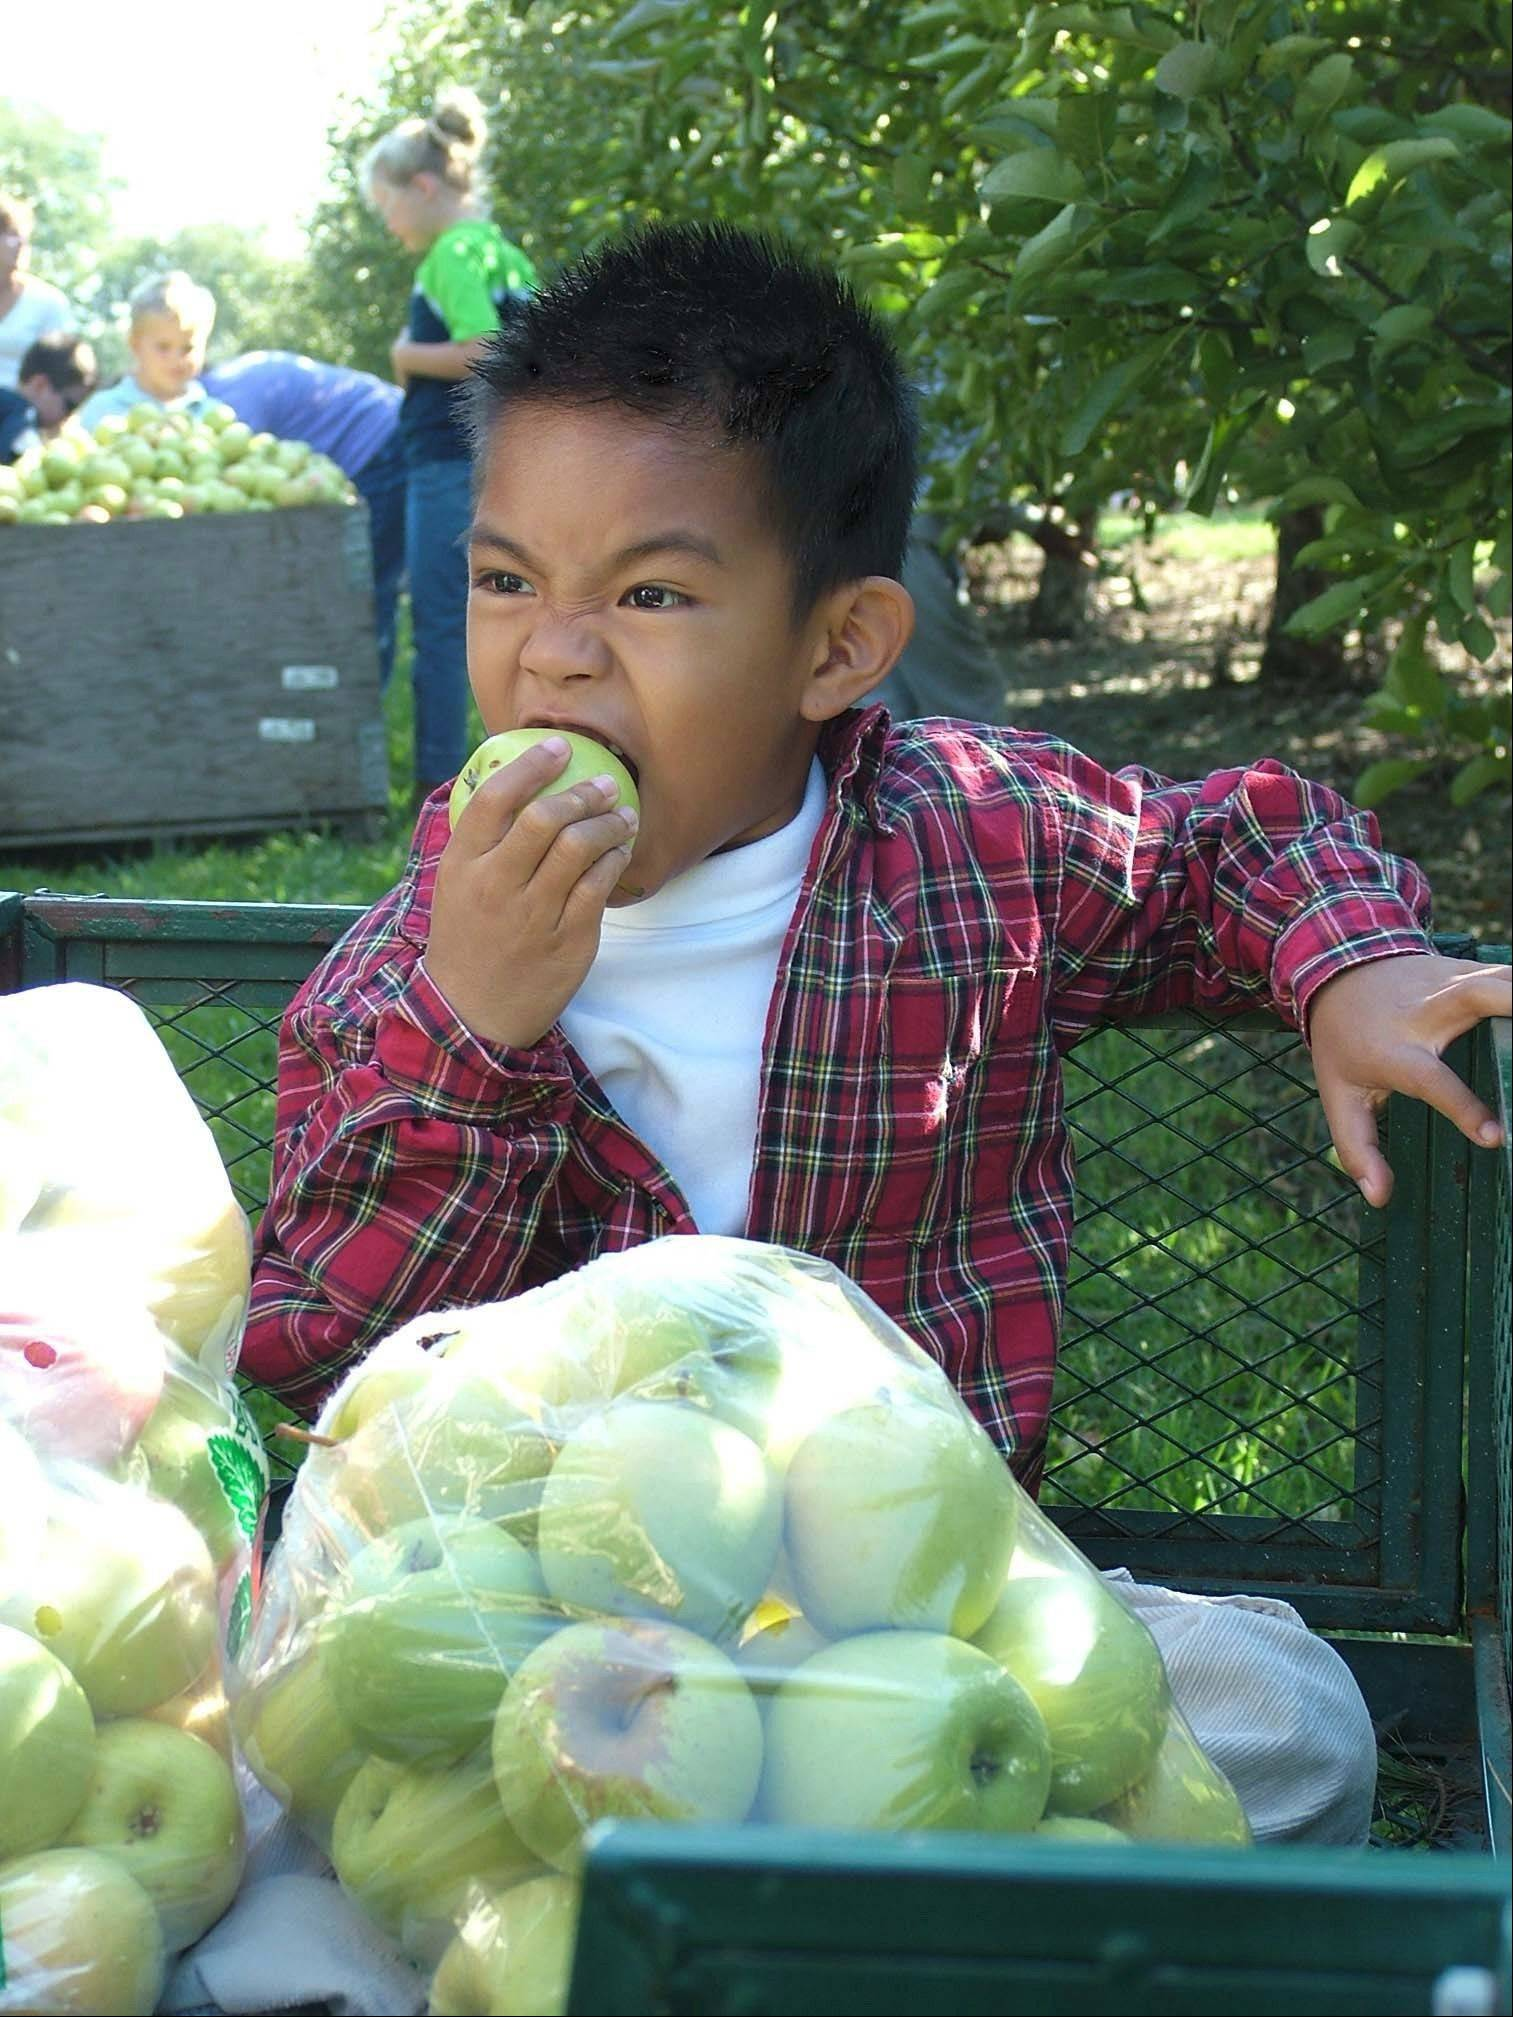 A youngster enjoys the fruit of his labor.